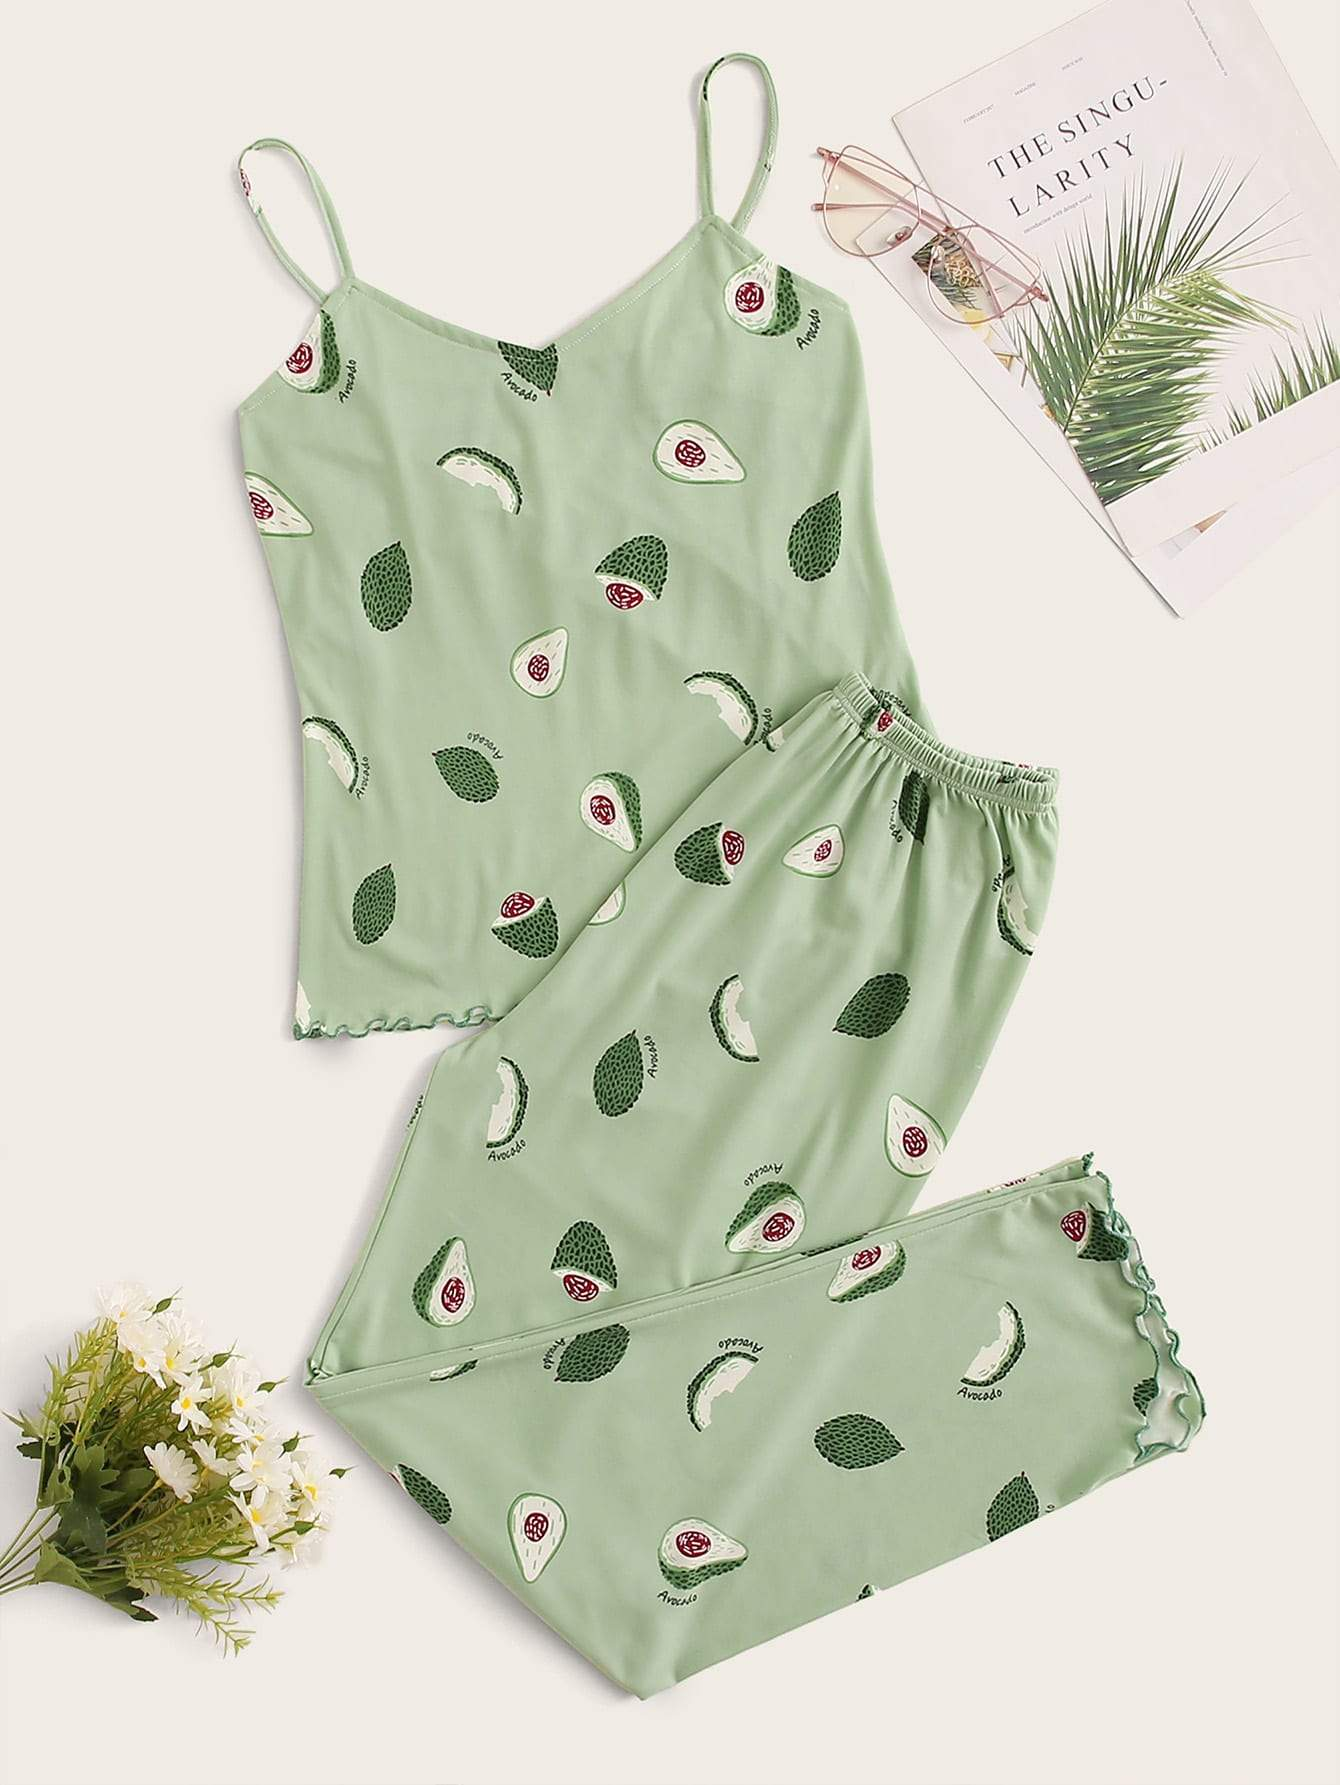 Avocado Print Lettuce Trim Cami PJ Set - FLJ CORPORATIONS